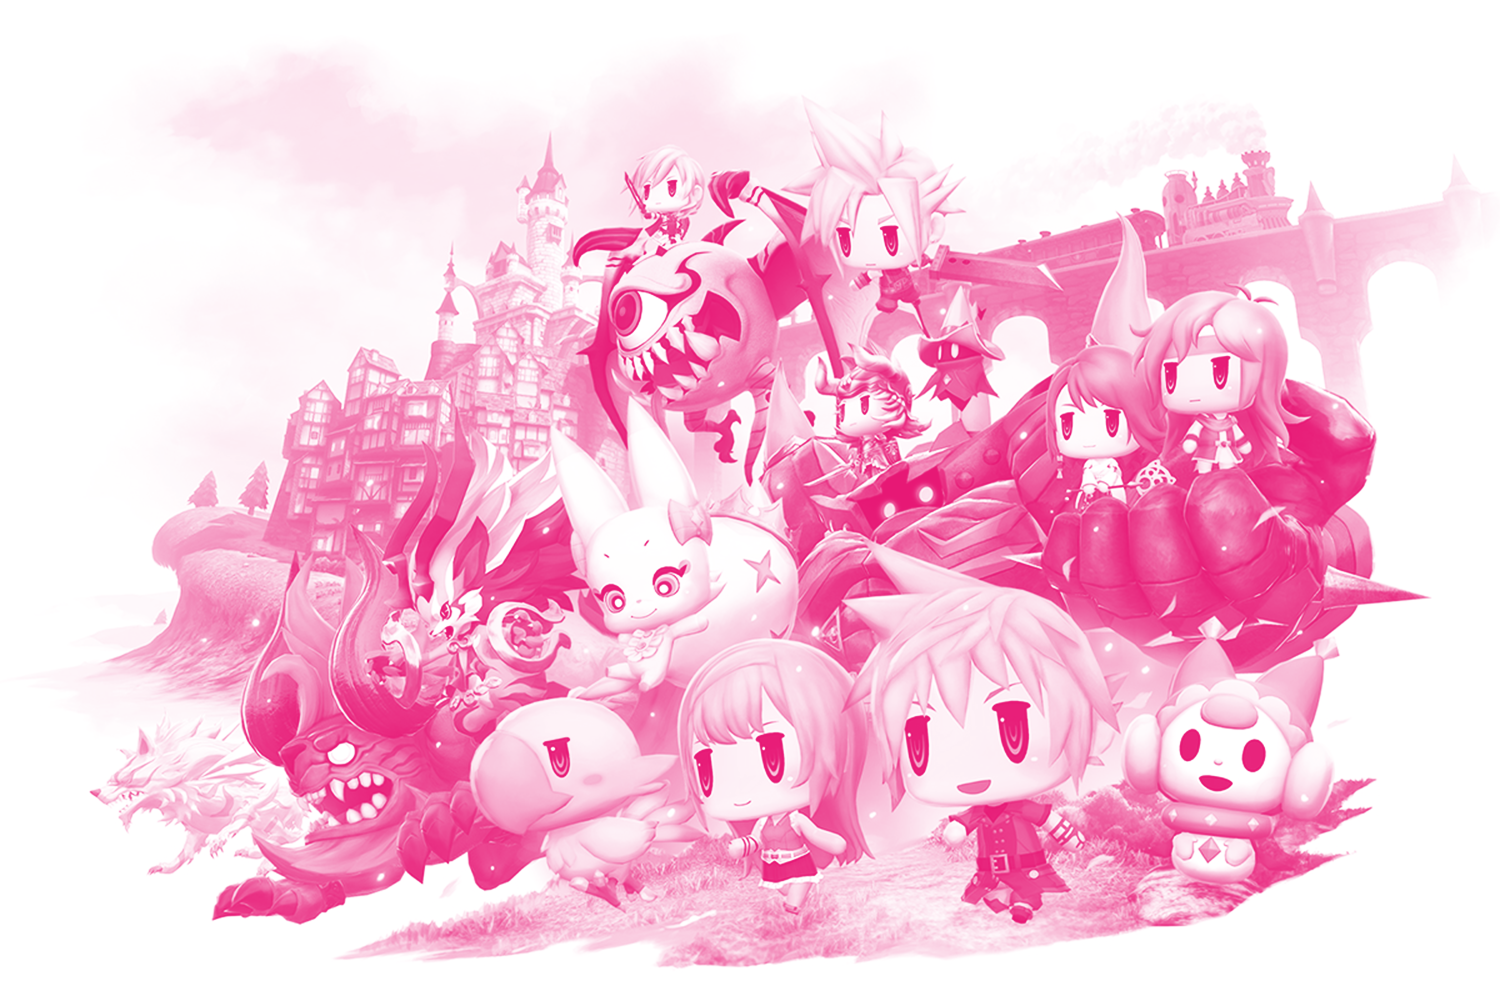 WOFF_BANNER.png